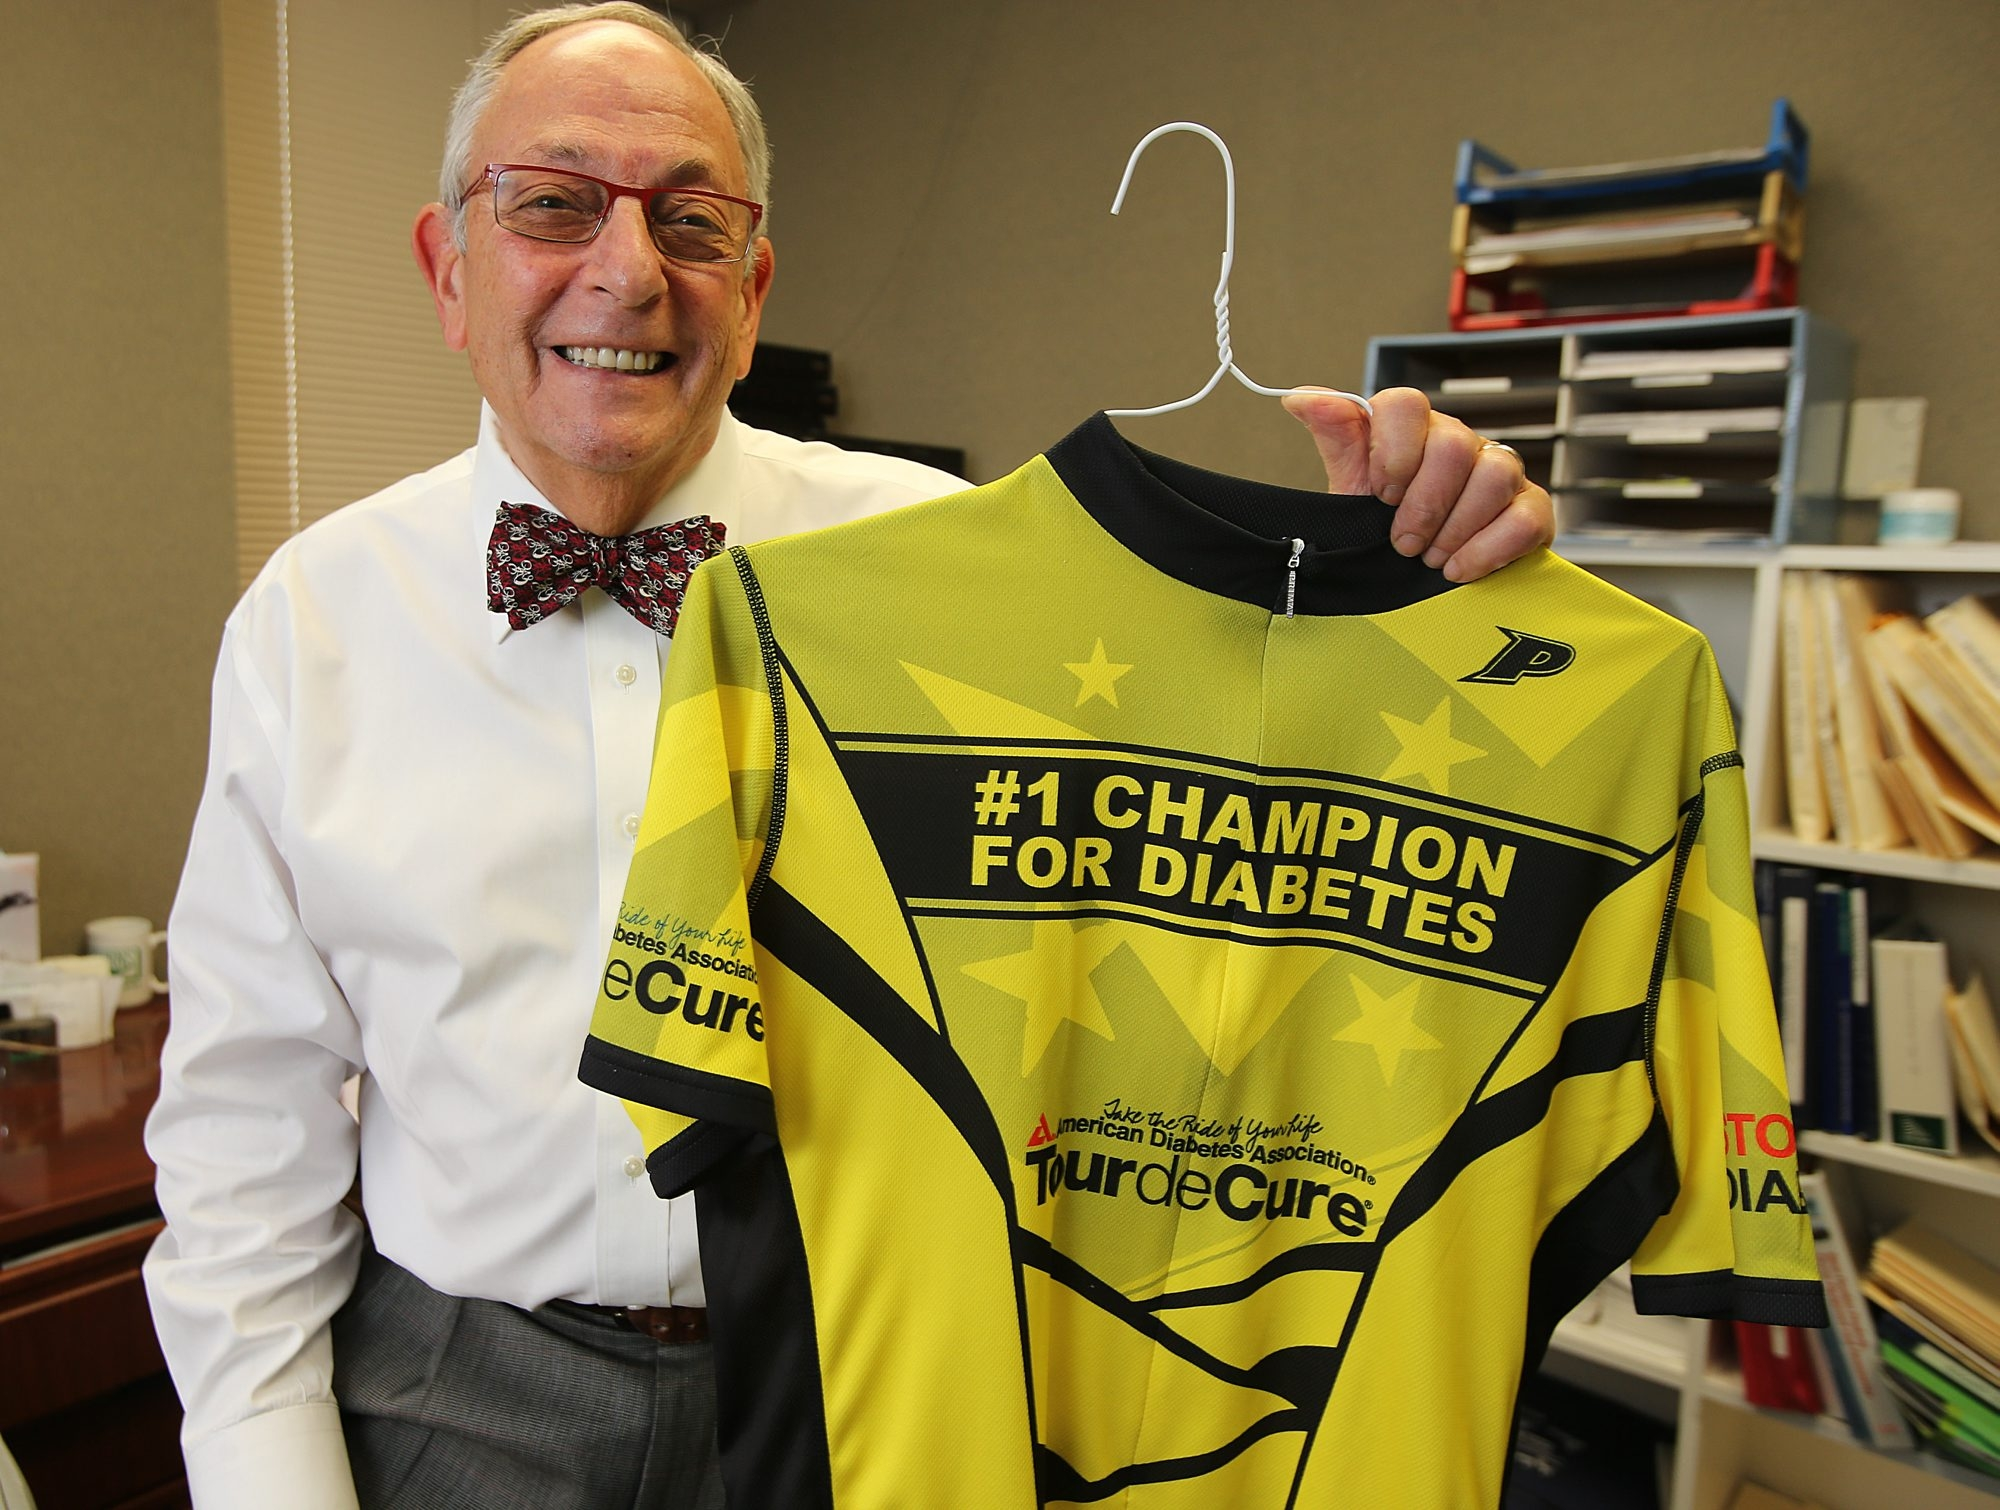 """As the population became more and more obese, the incidence of diabetes rose,"" said Dr. Jeffrey Carrel, who will be riding in his 20th Tour de Cure to benefit diabetes research"